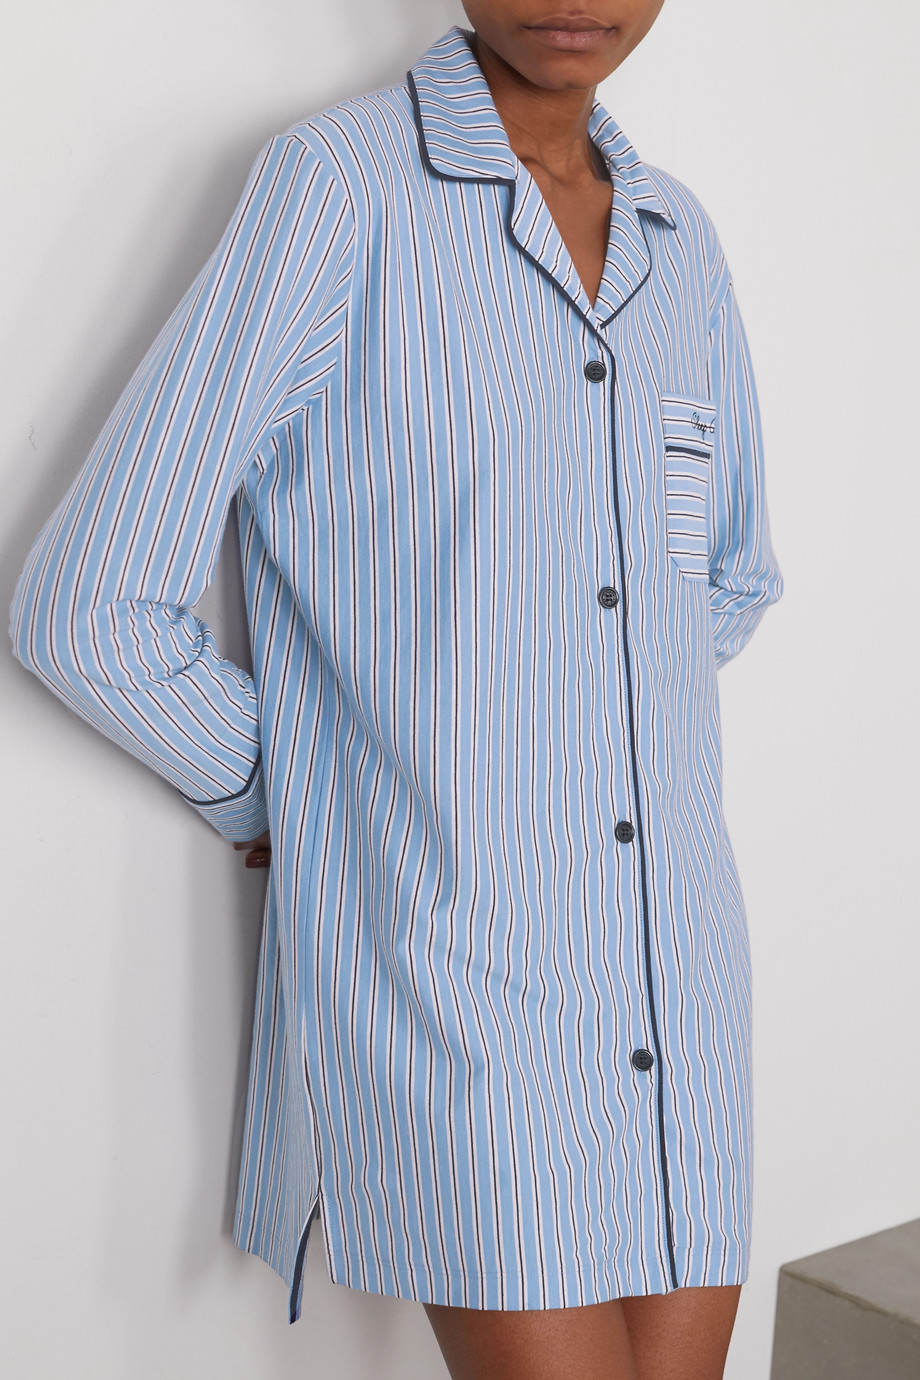 Ninety Percent + NET SUSTAIN embroidered striped organic cotton-jersey nightdress